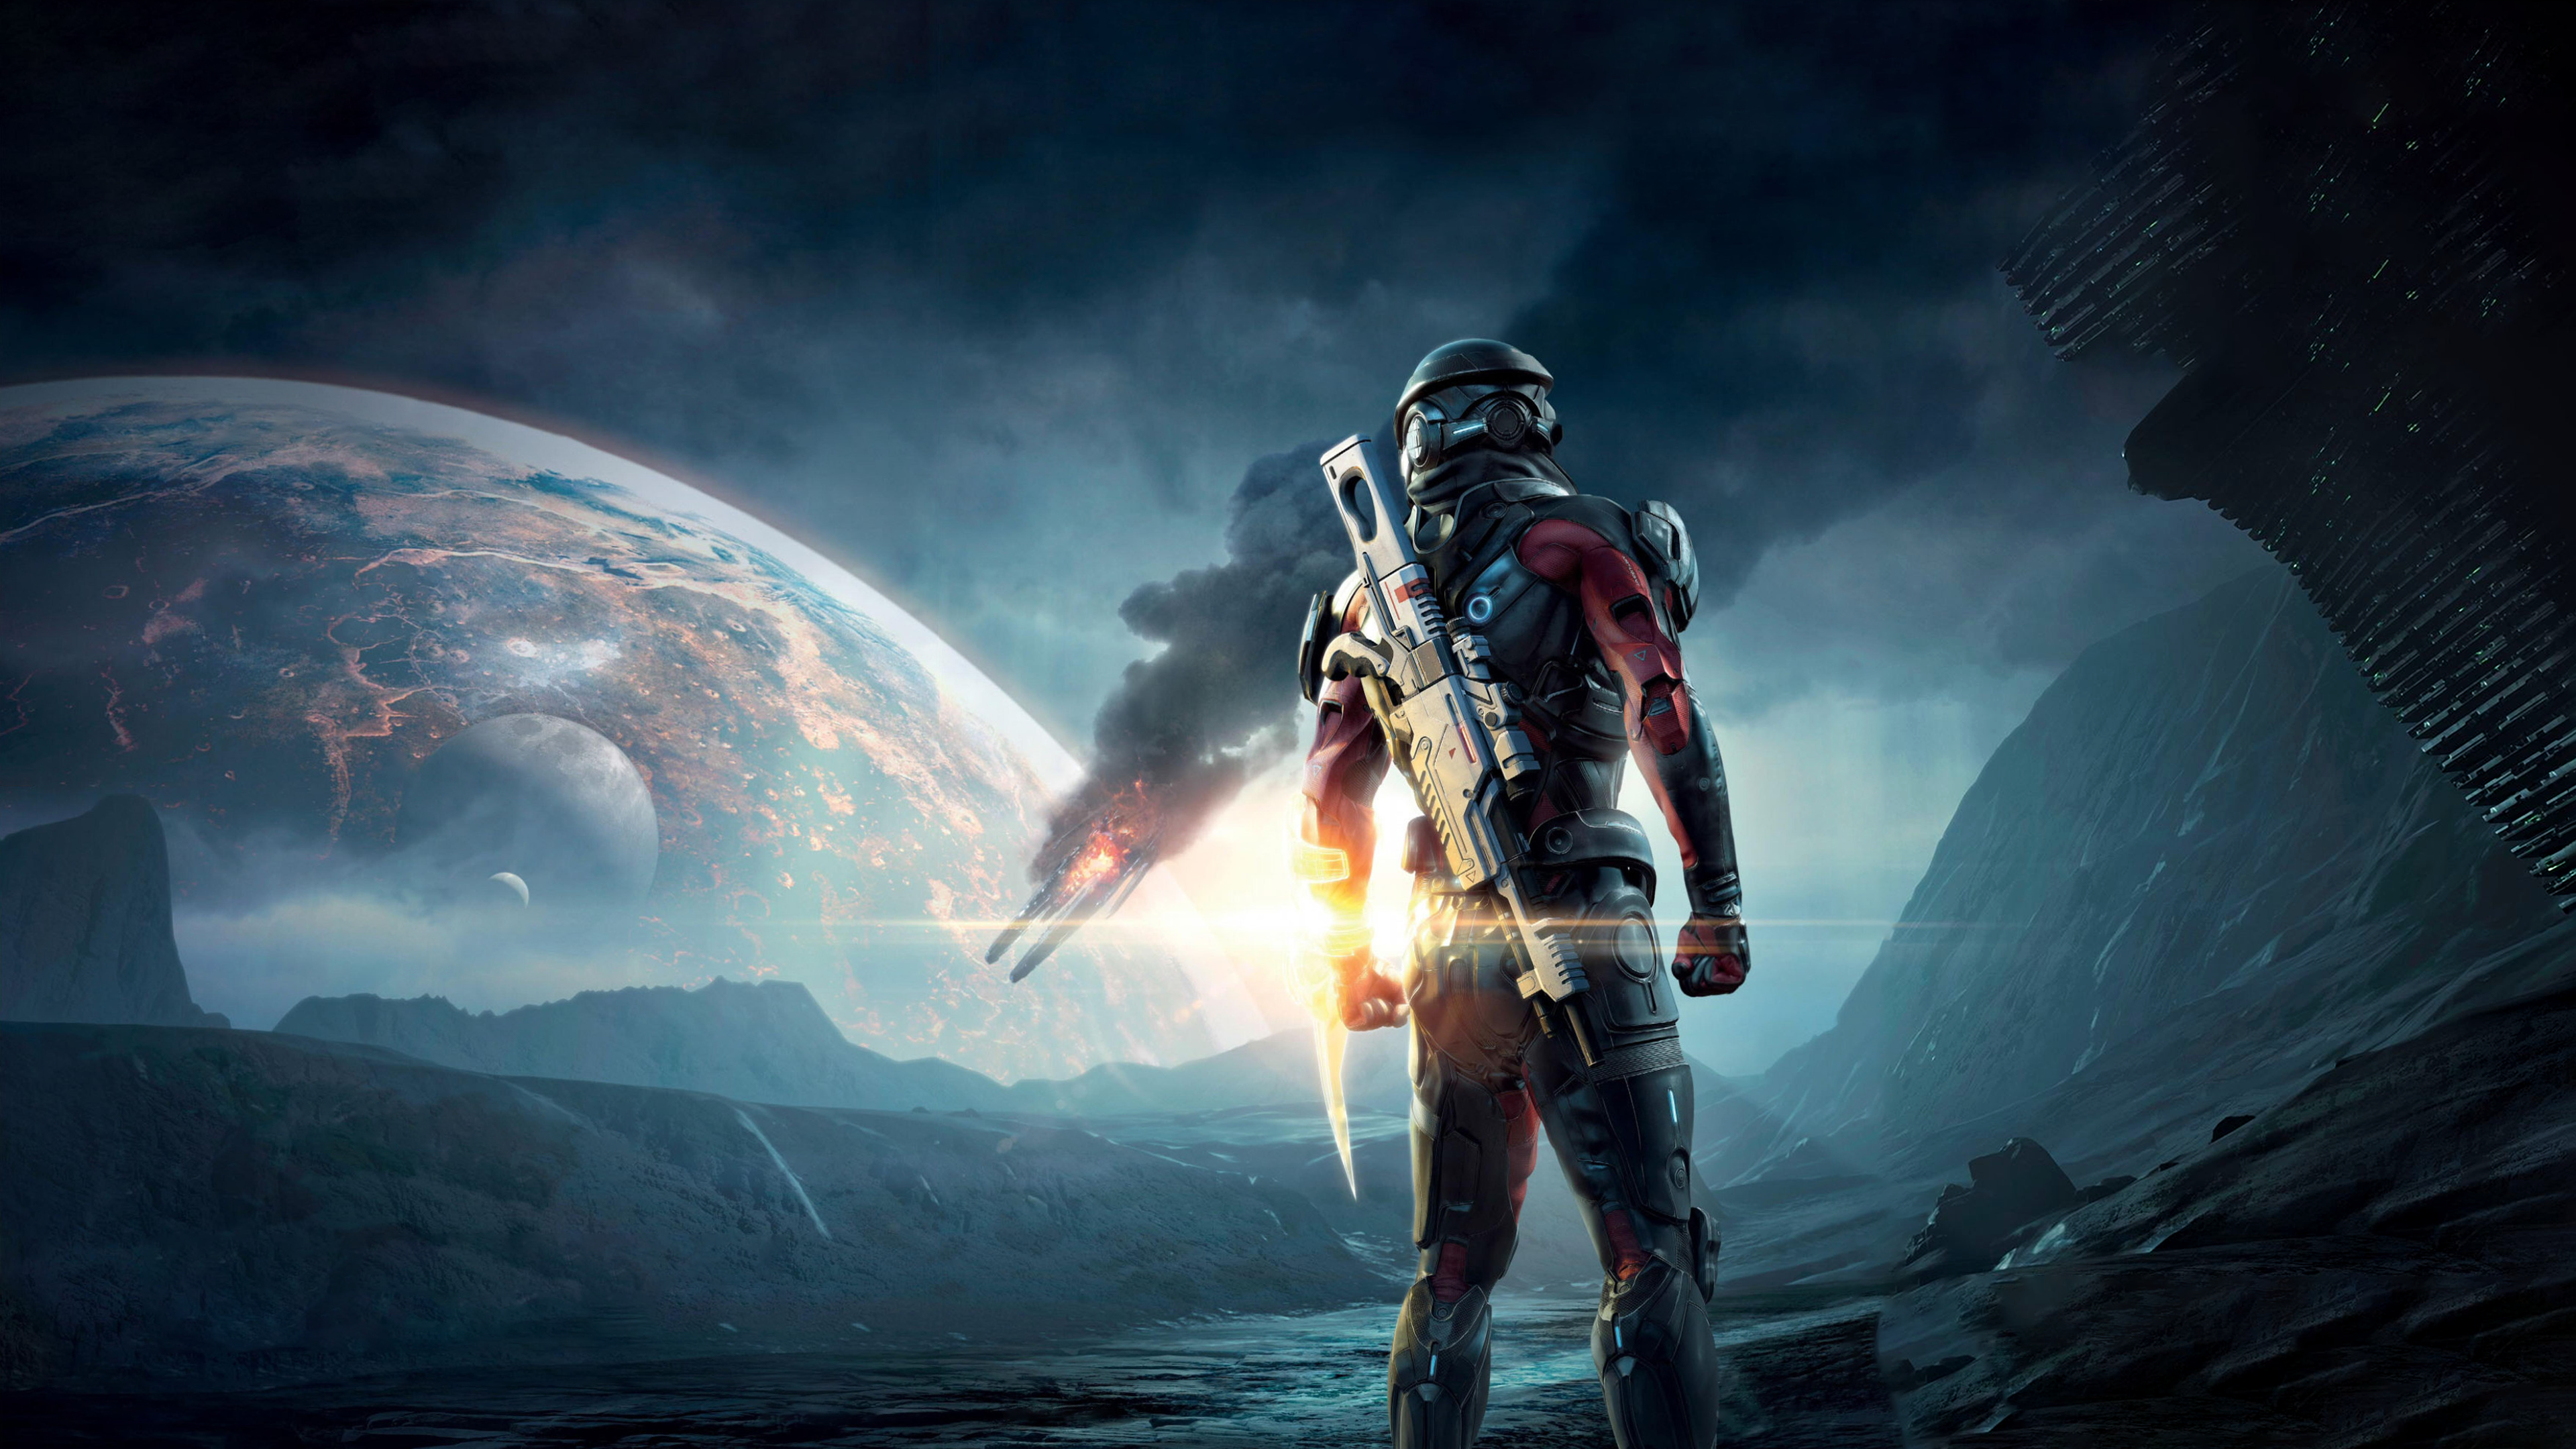 Background Images Wallpaper Abyss: 80 Mass Effect: Andromeda HD Wallpapers